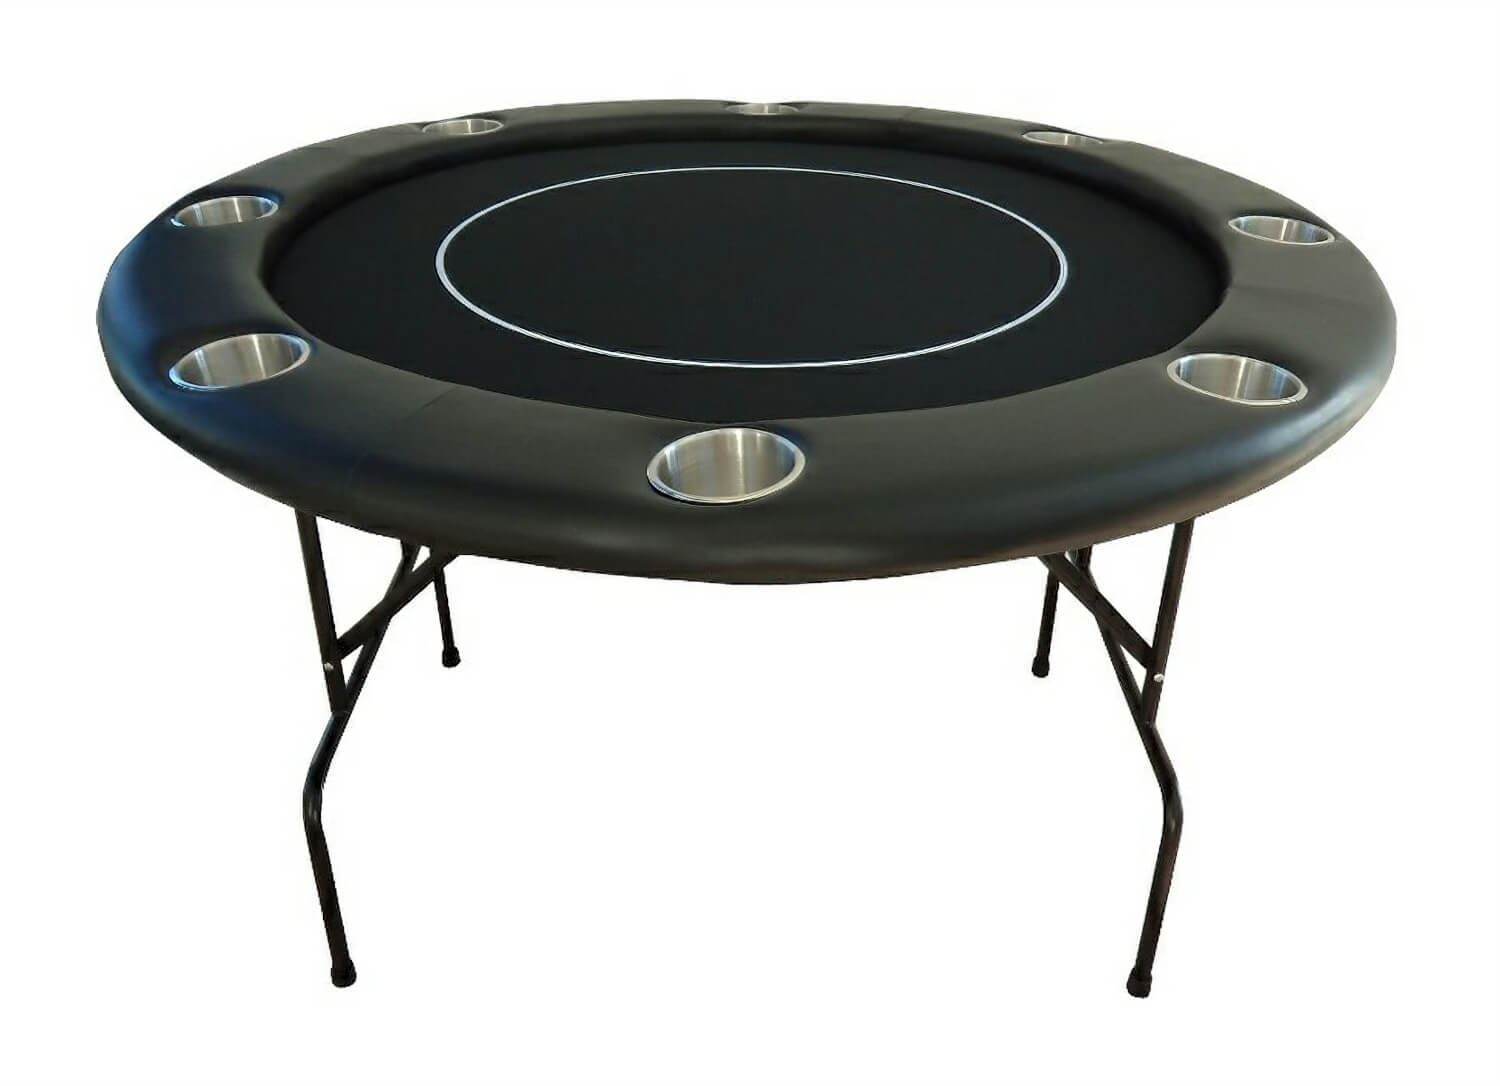 Round Poker Table With Folding Metal Legs Liberty Games